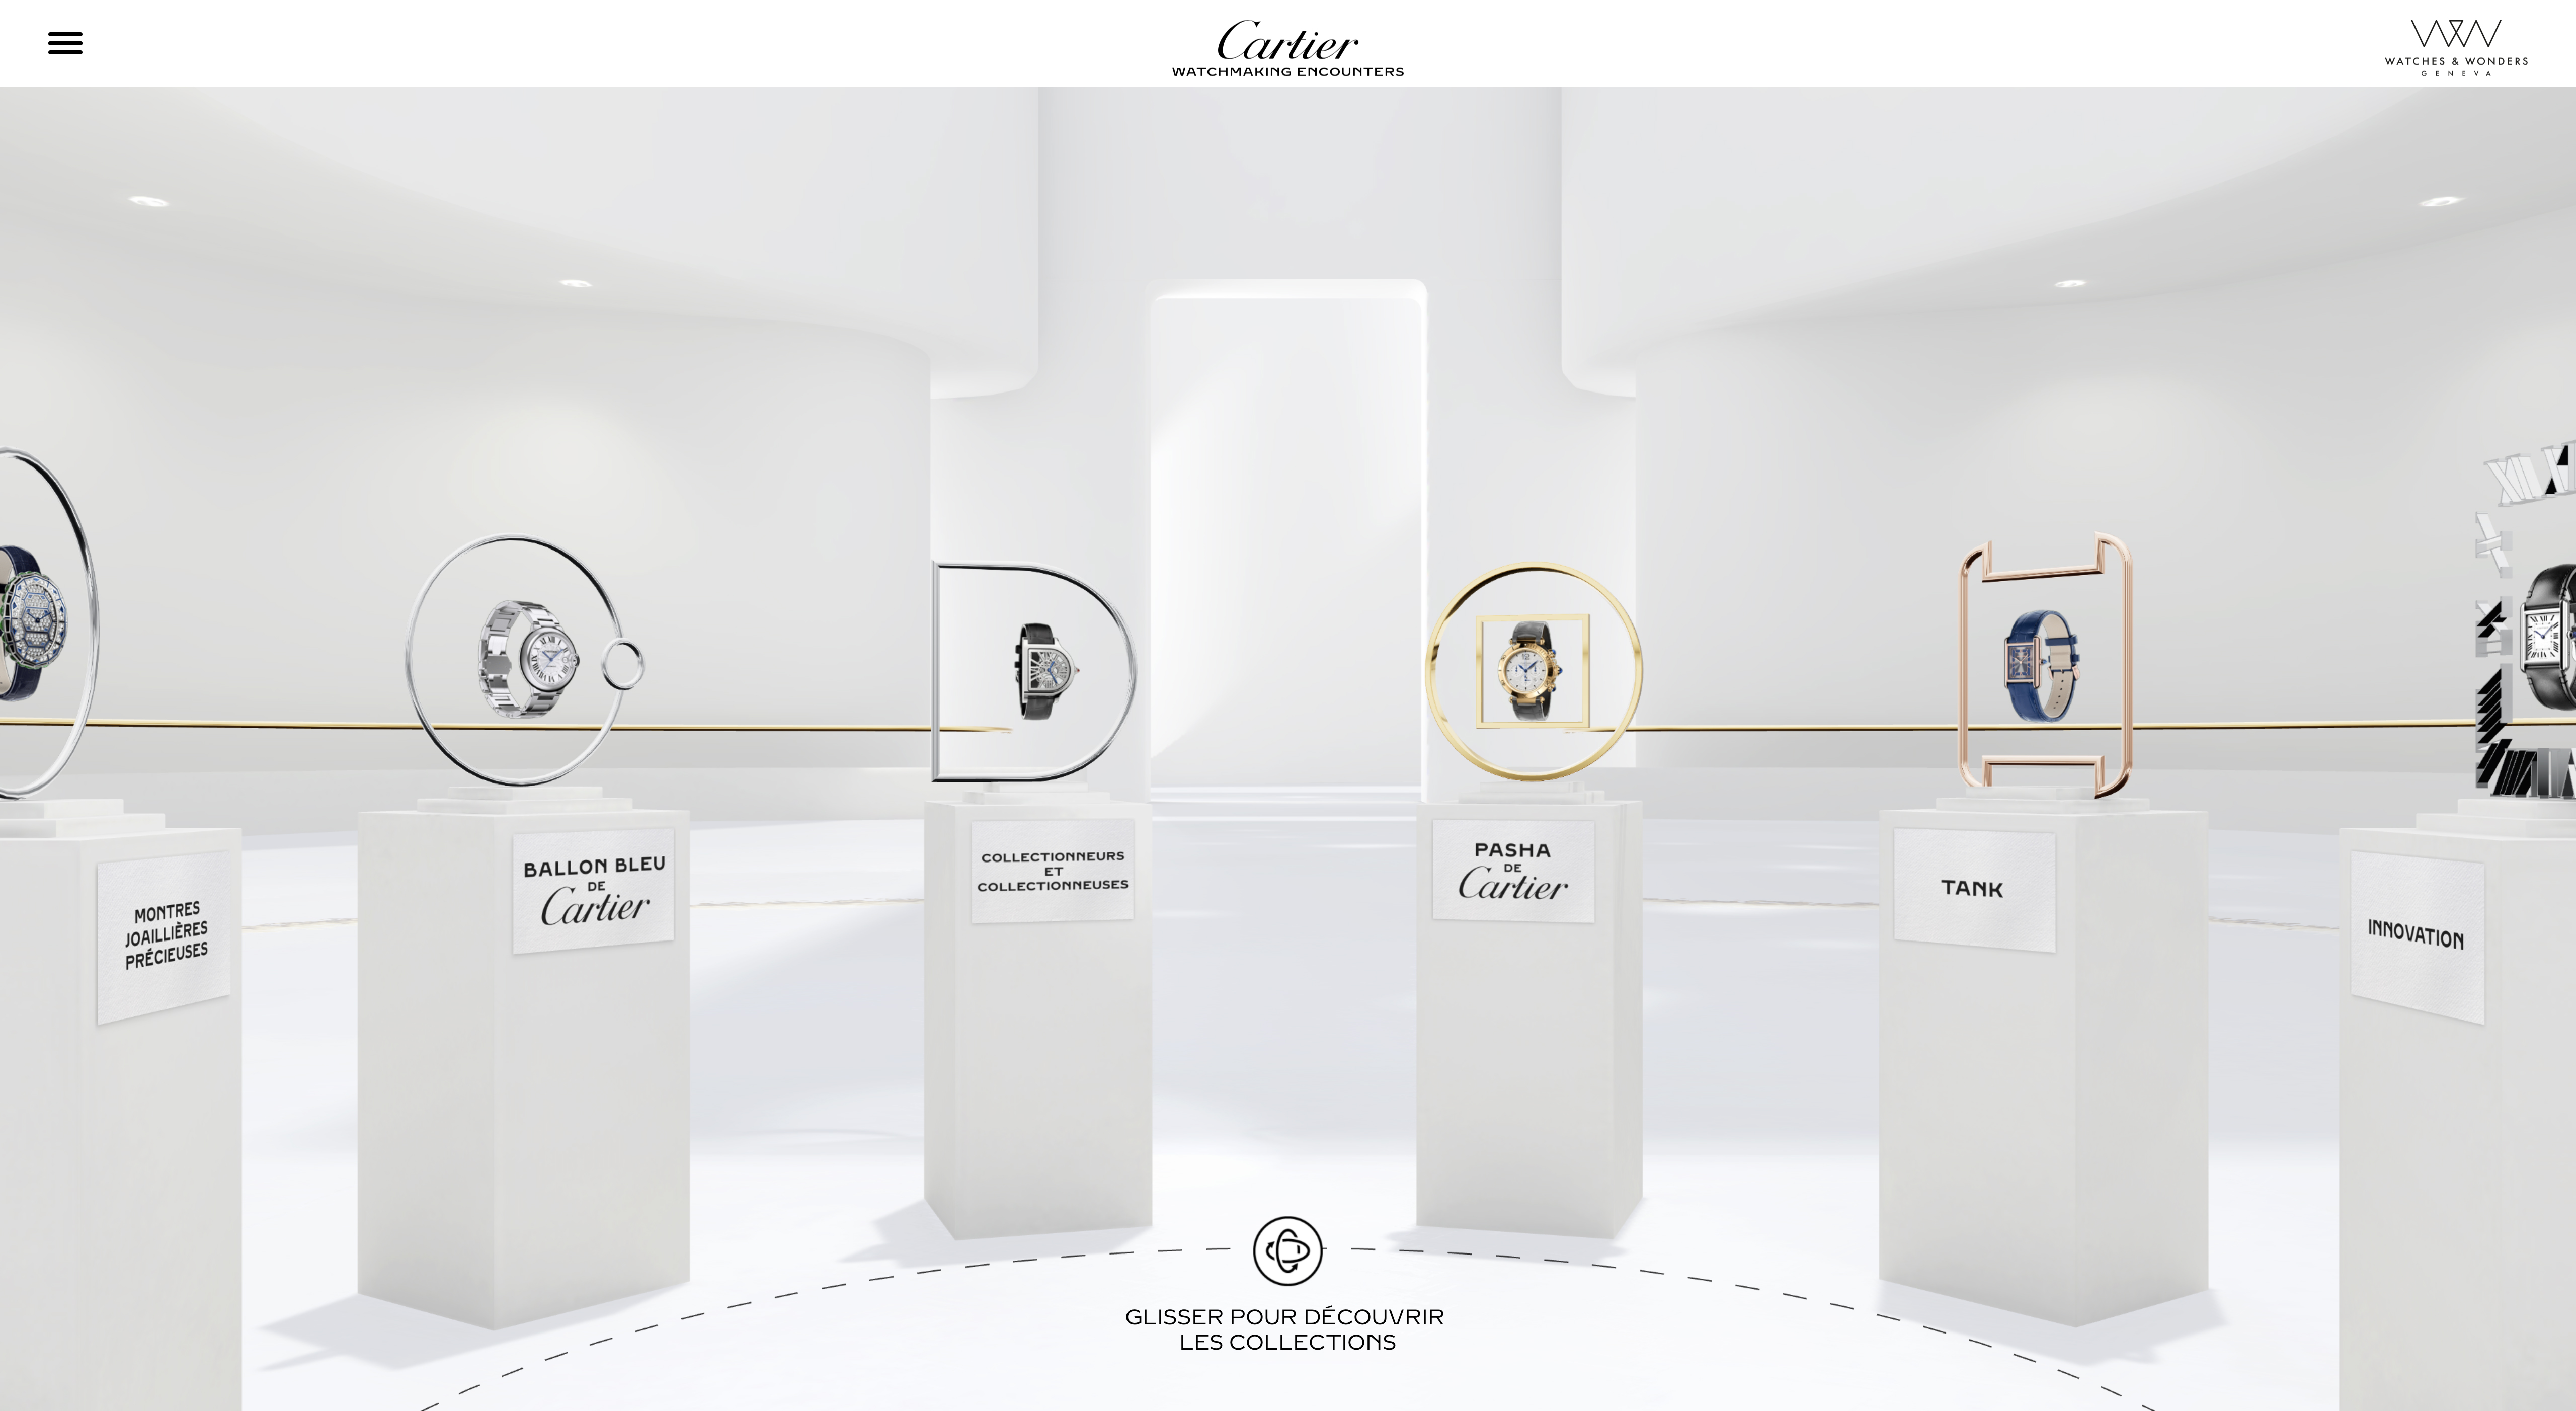 Cartier's Watch Encounters site